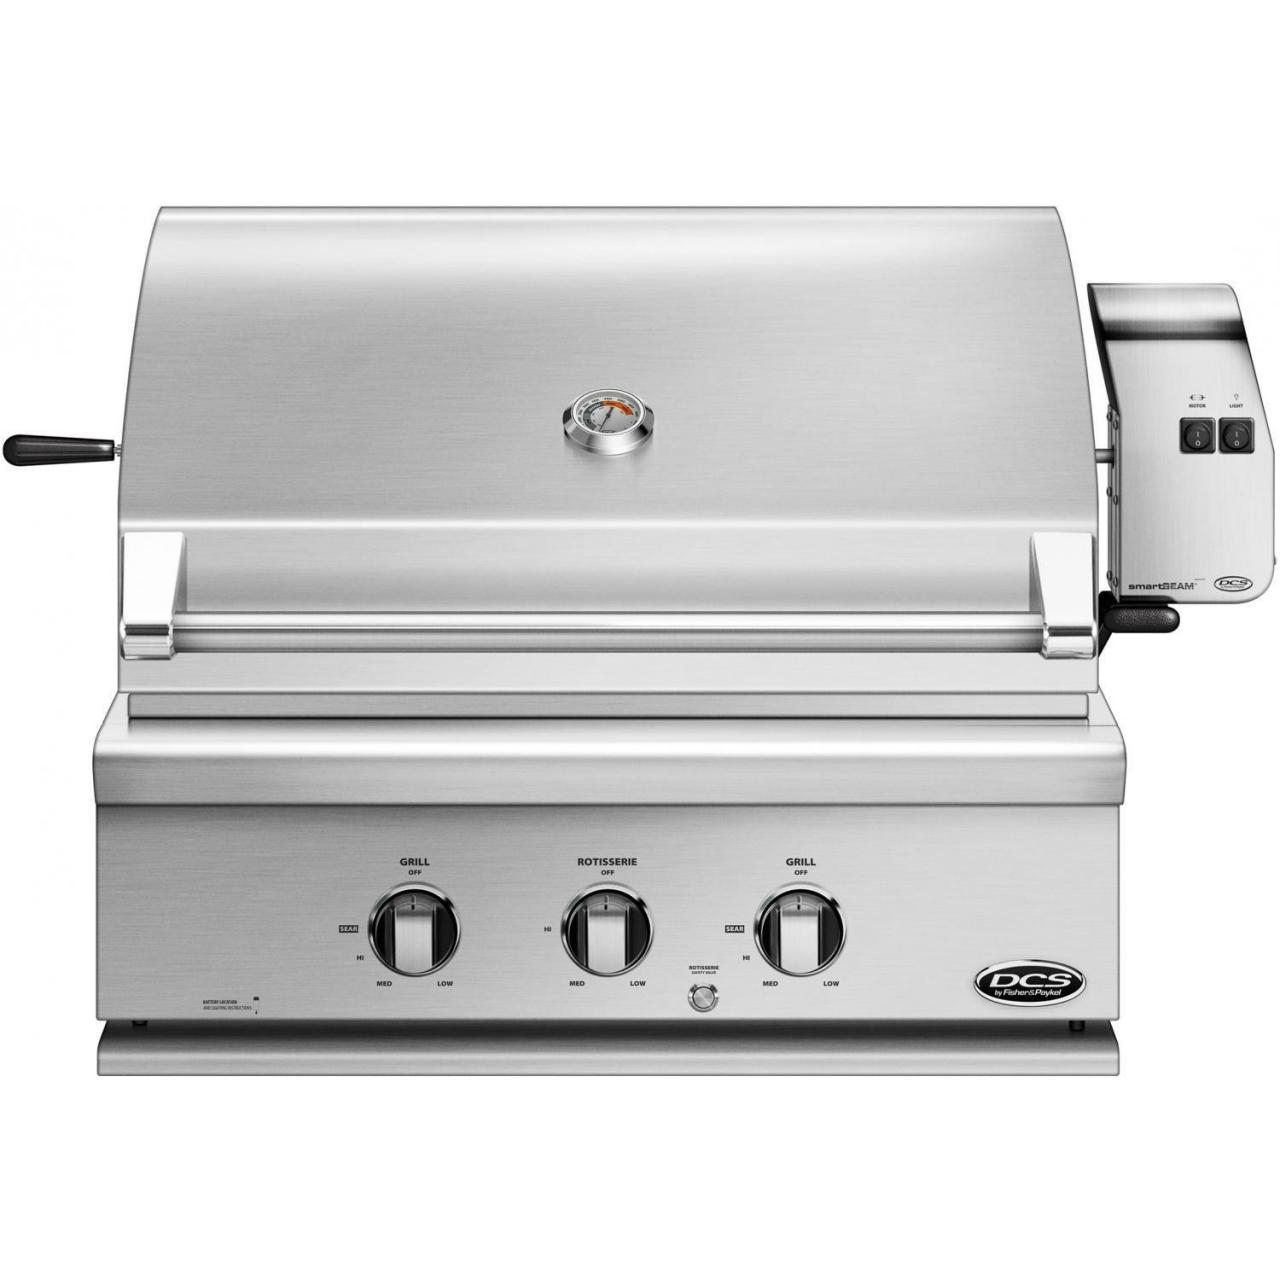 Quality DCS Professional 30-Inch Built-In Natural Gas Grill With Rotisserie - BH1-30R-N for sale